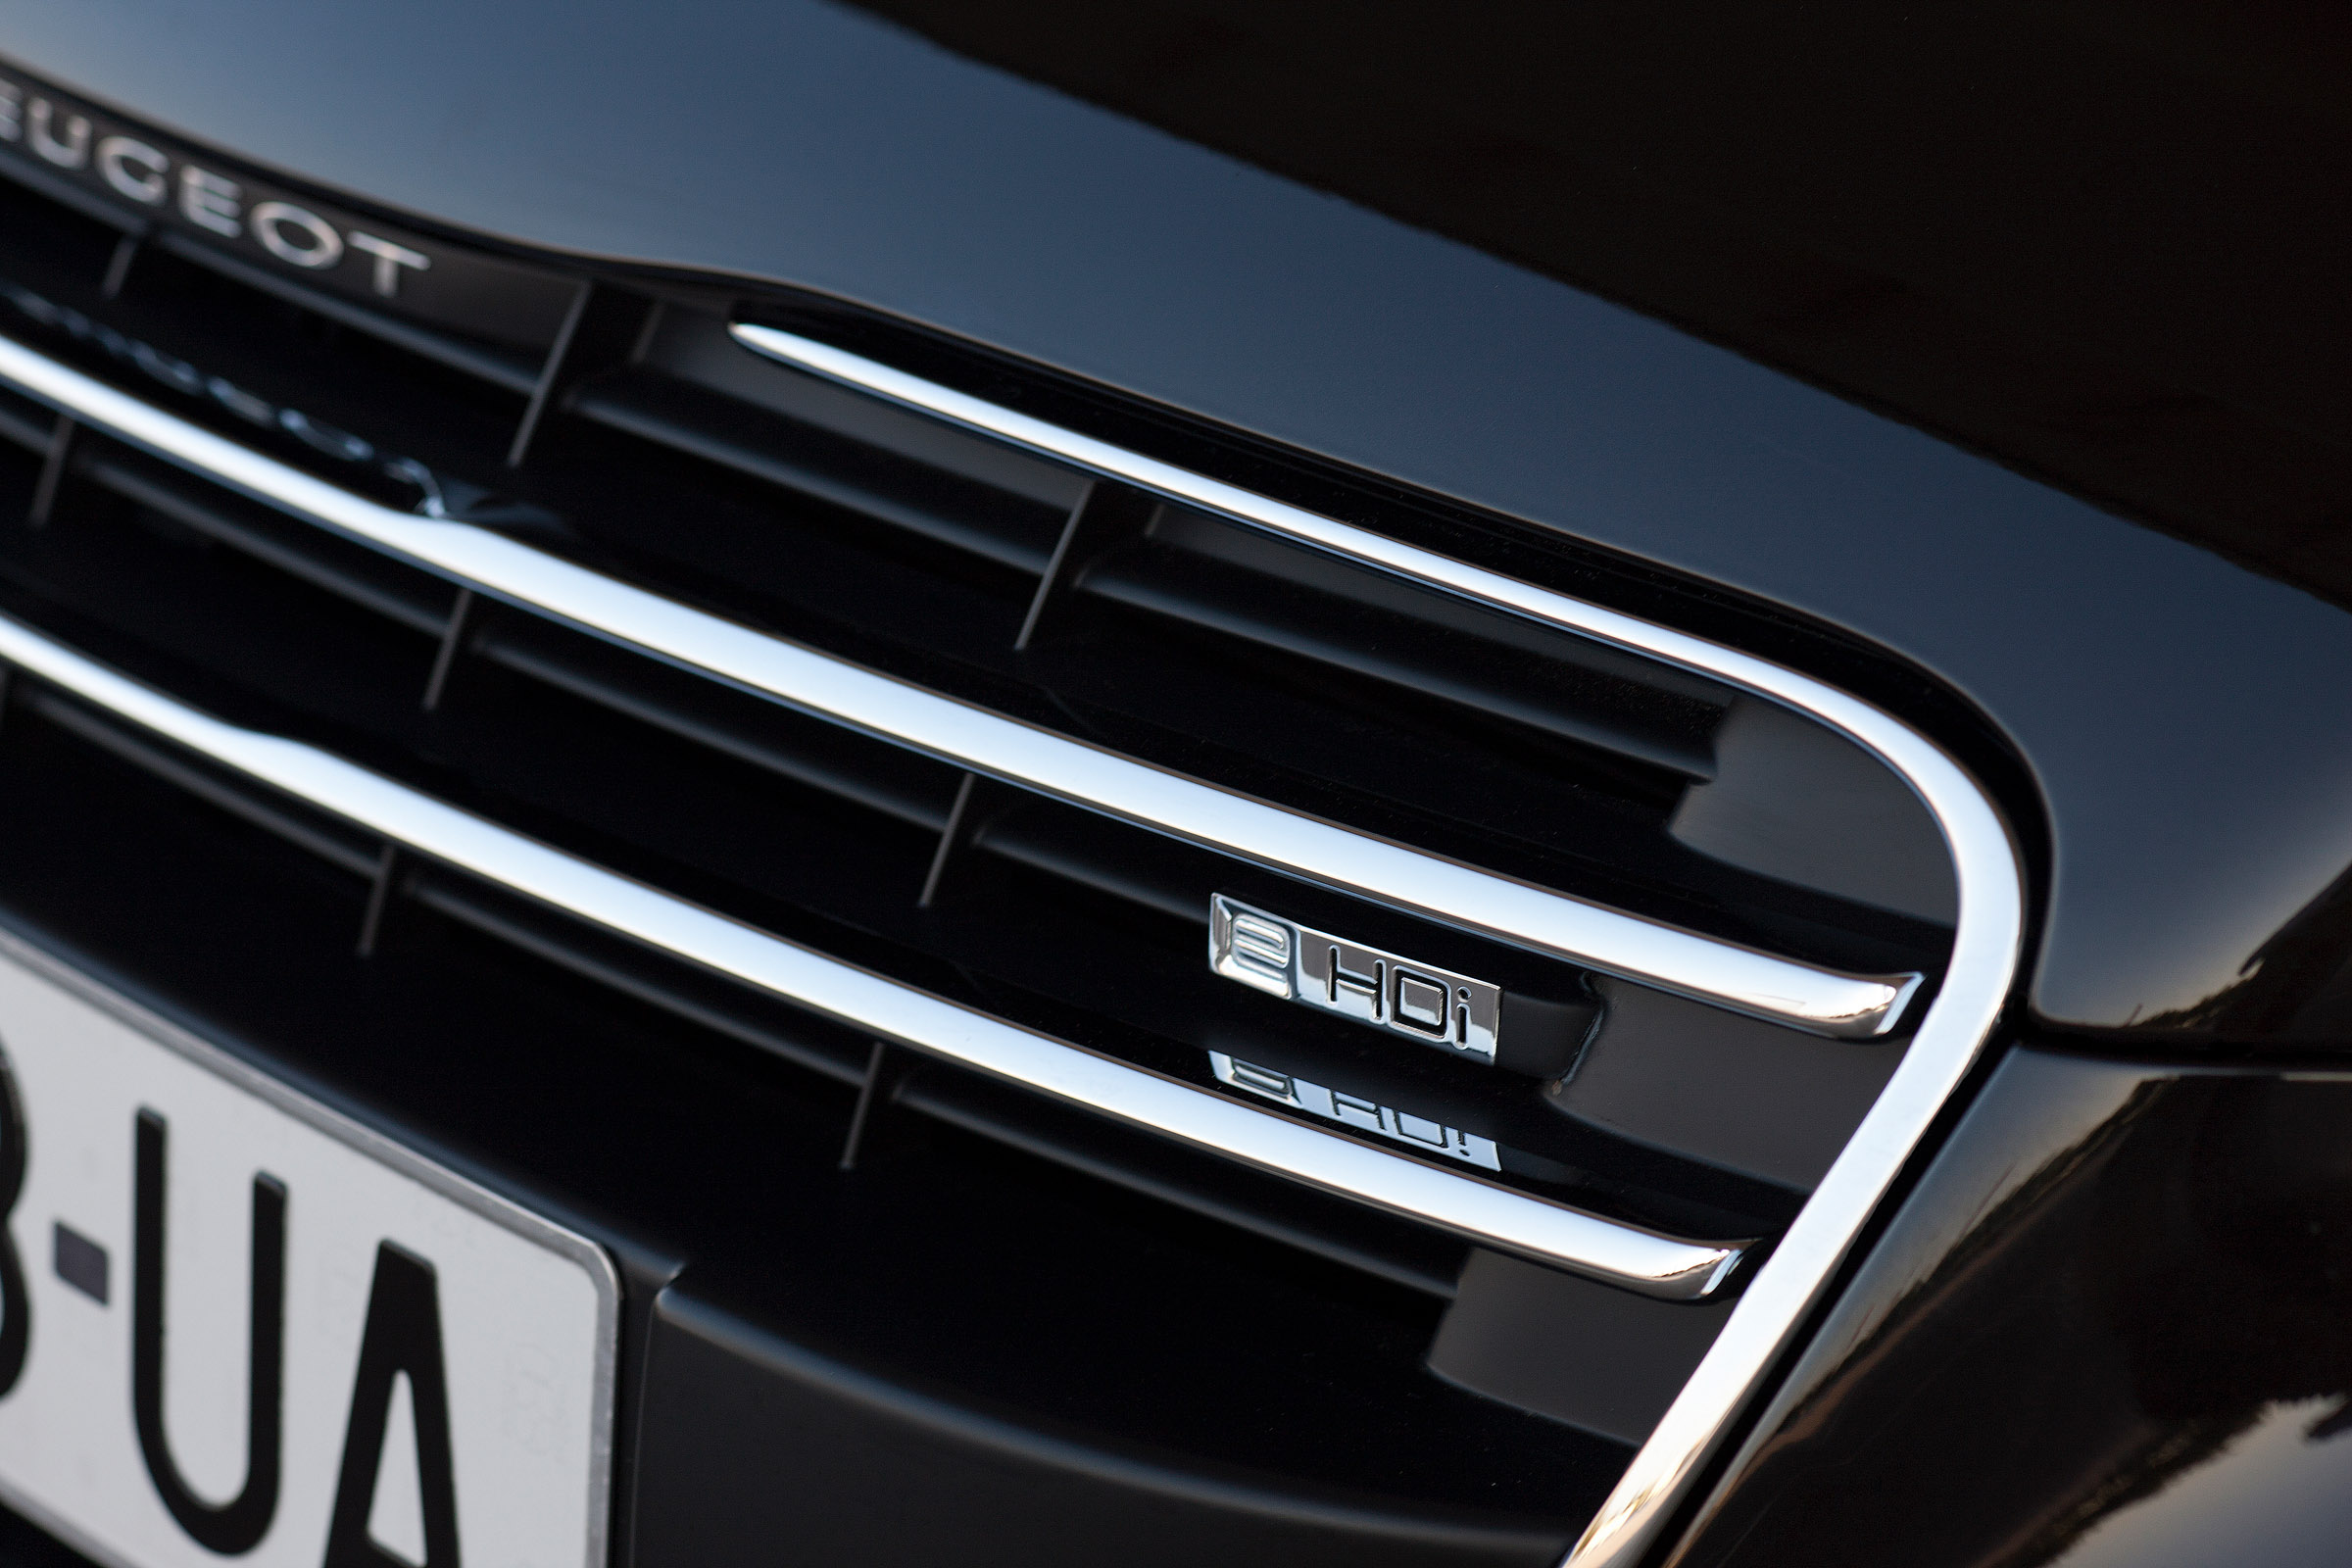 2011 Peugeot 508 reports strong sales